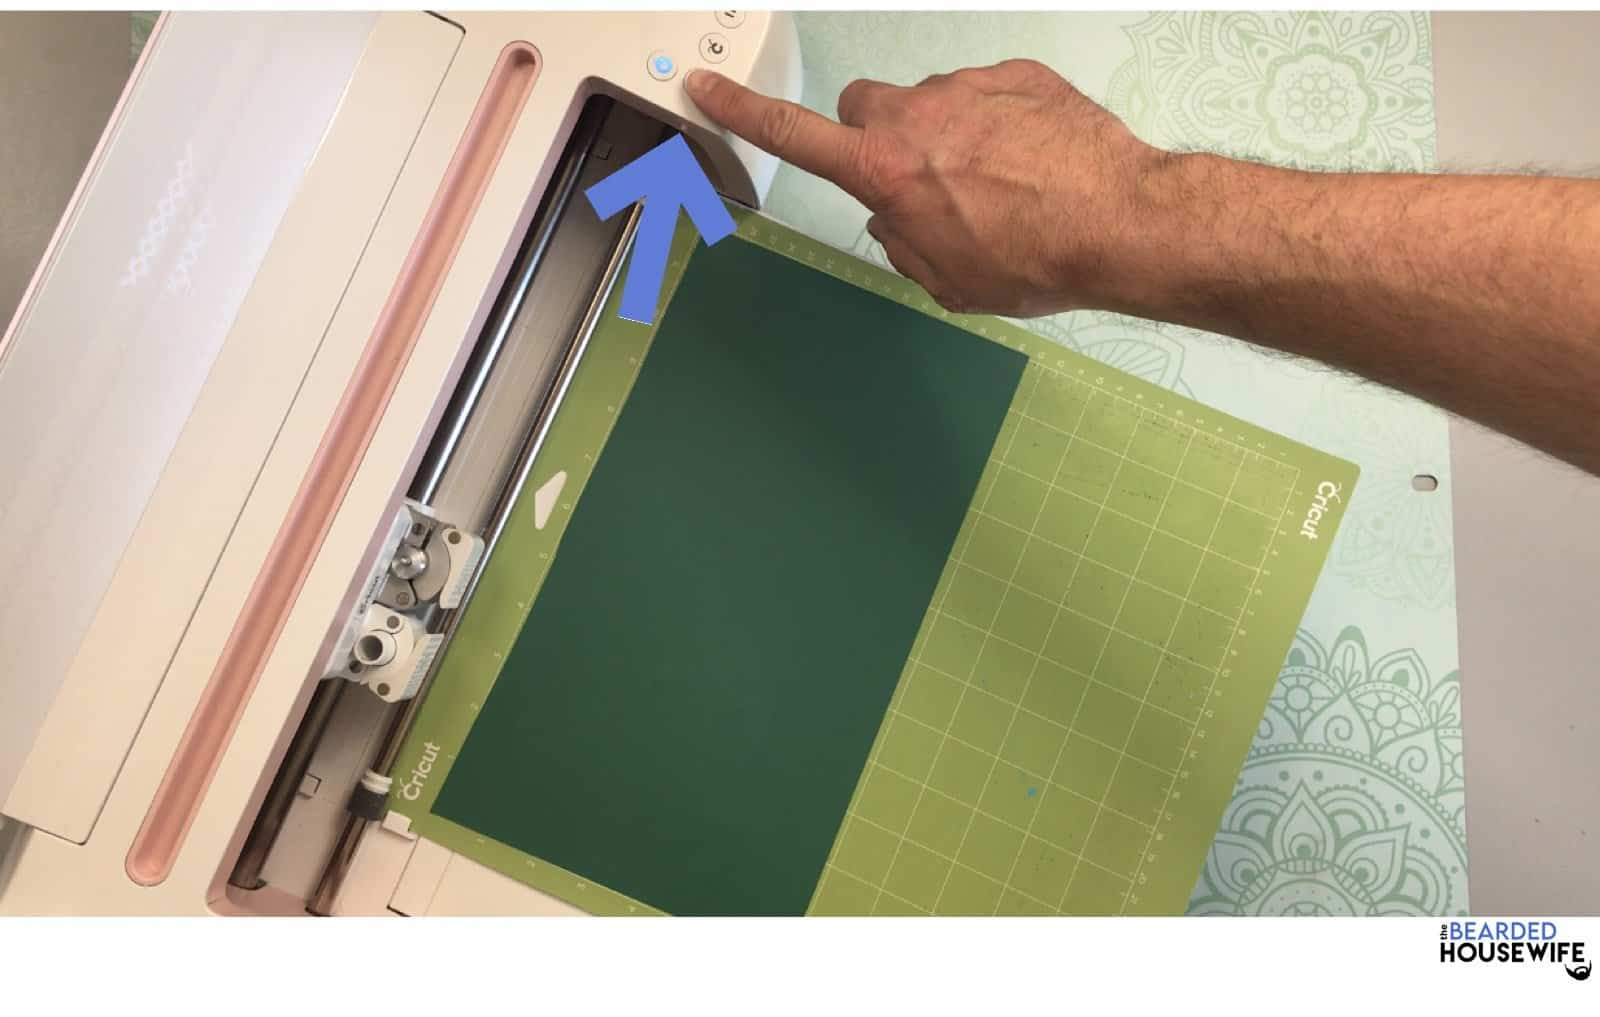 click the arrow button to load your mat